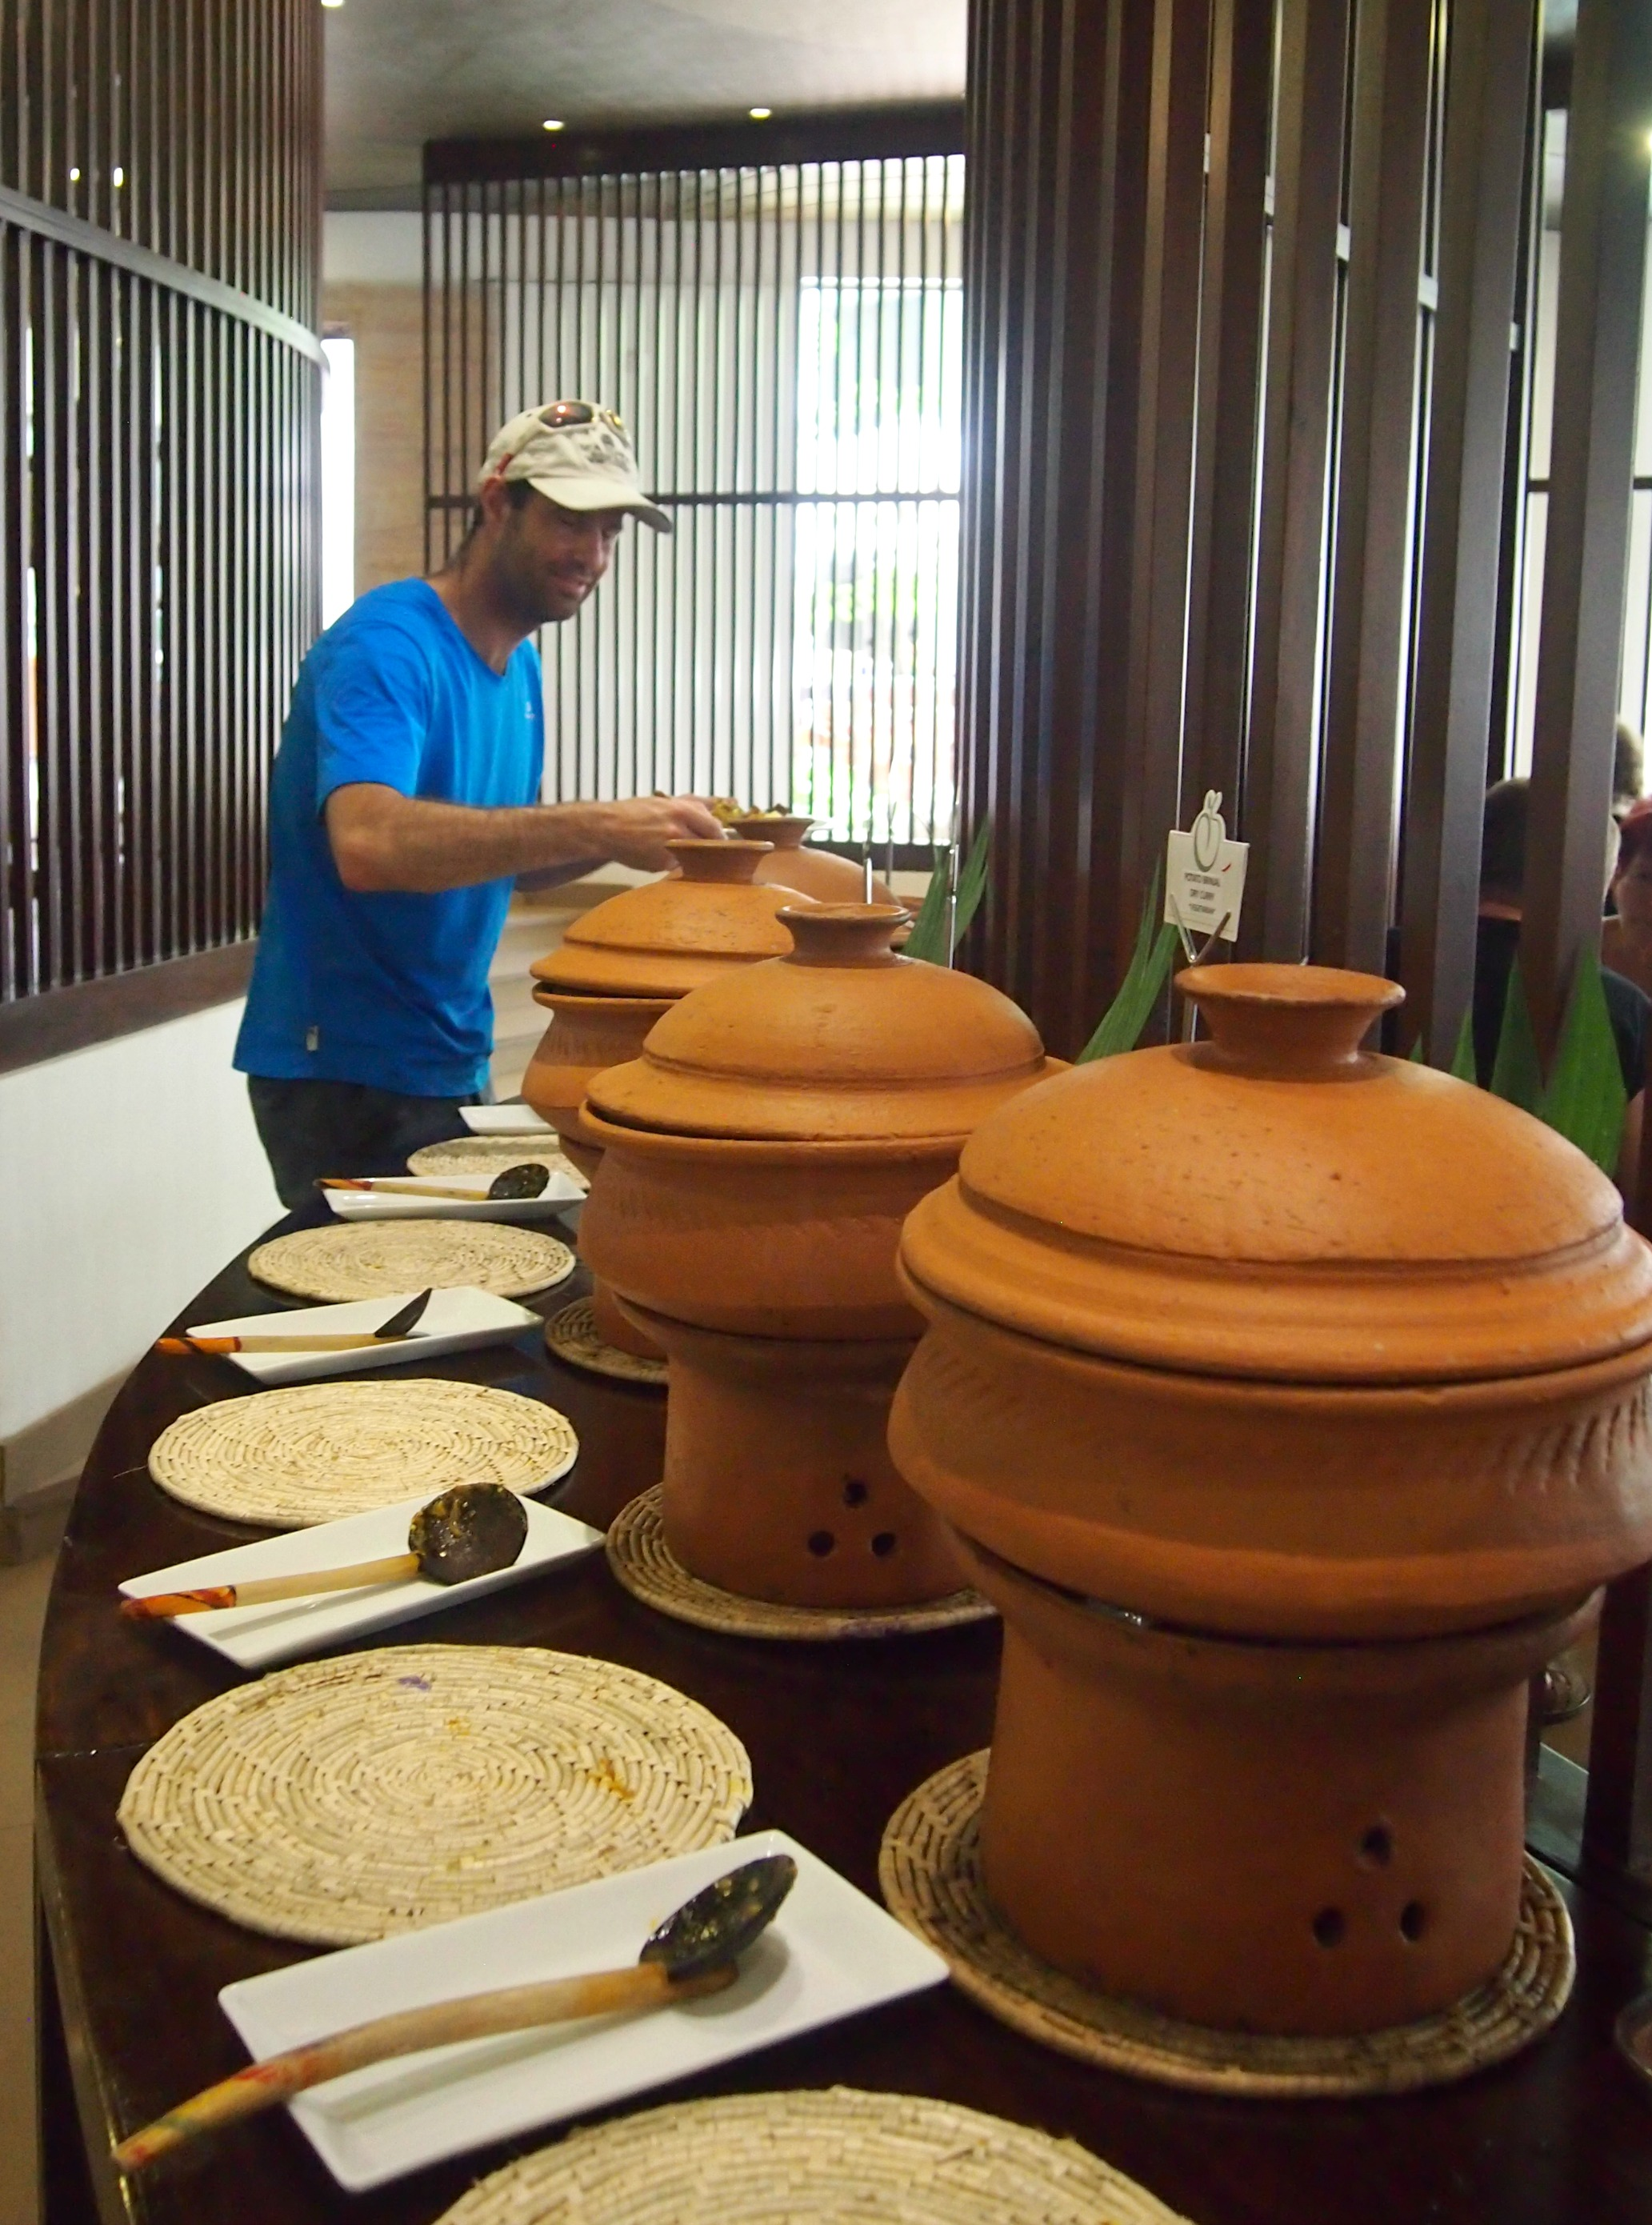 breakfast buffet in Sri Lanka. Breakfast dishes